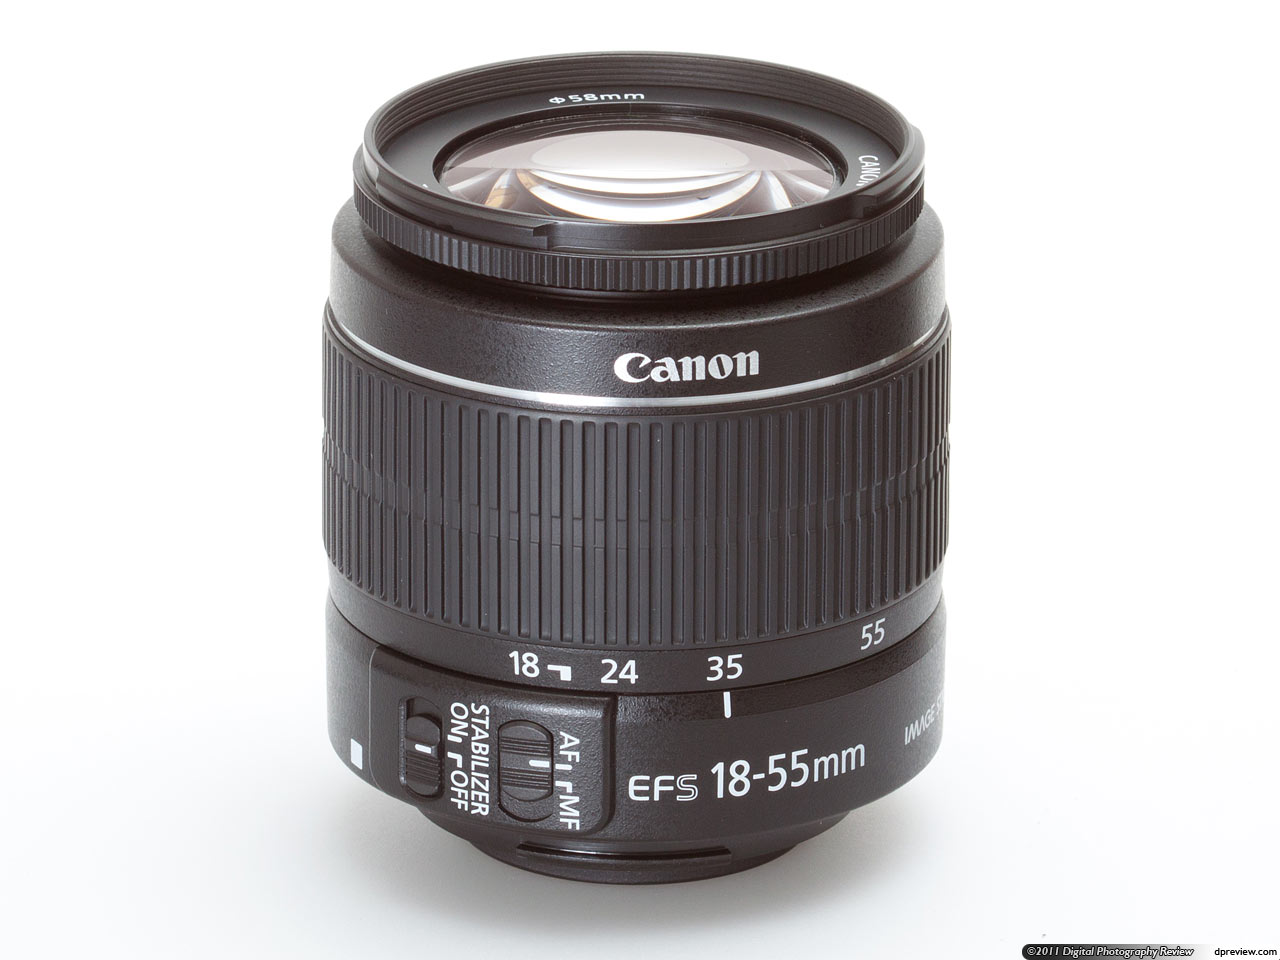 Revised kit lens - Canon EF-S 18-55mm F3.6-5.6 IS II